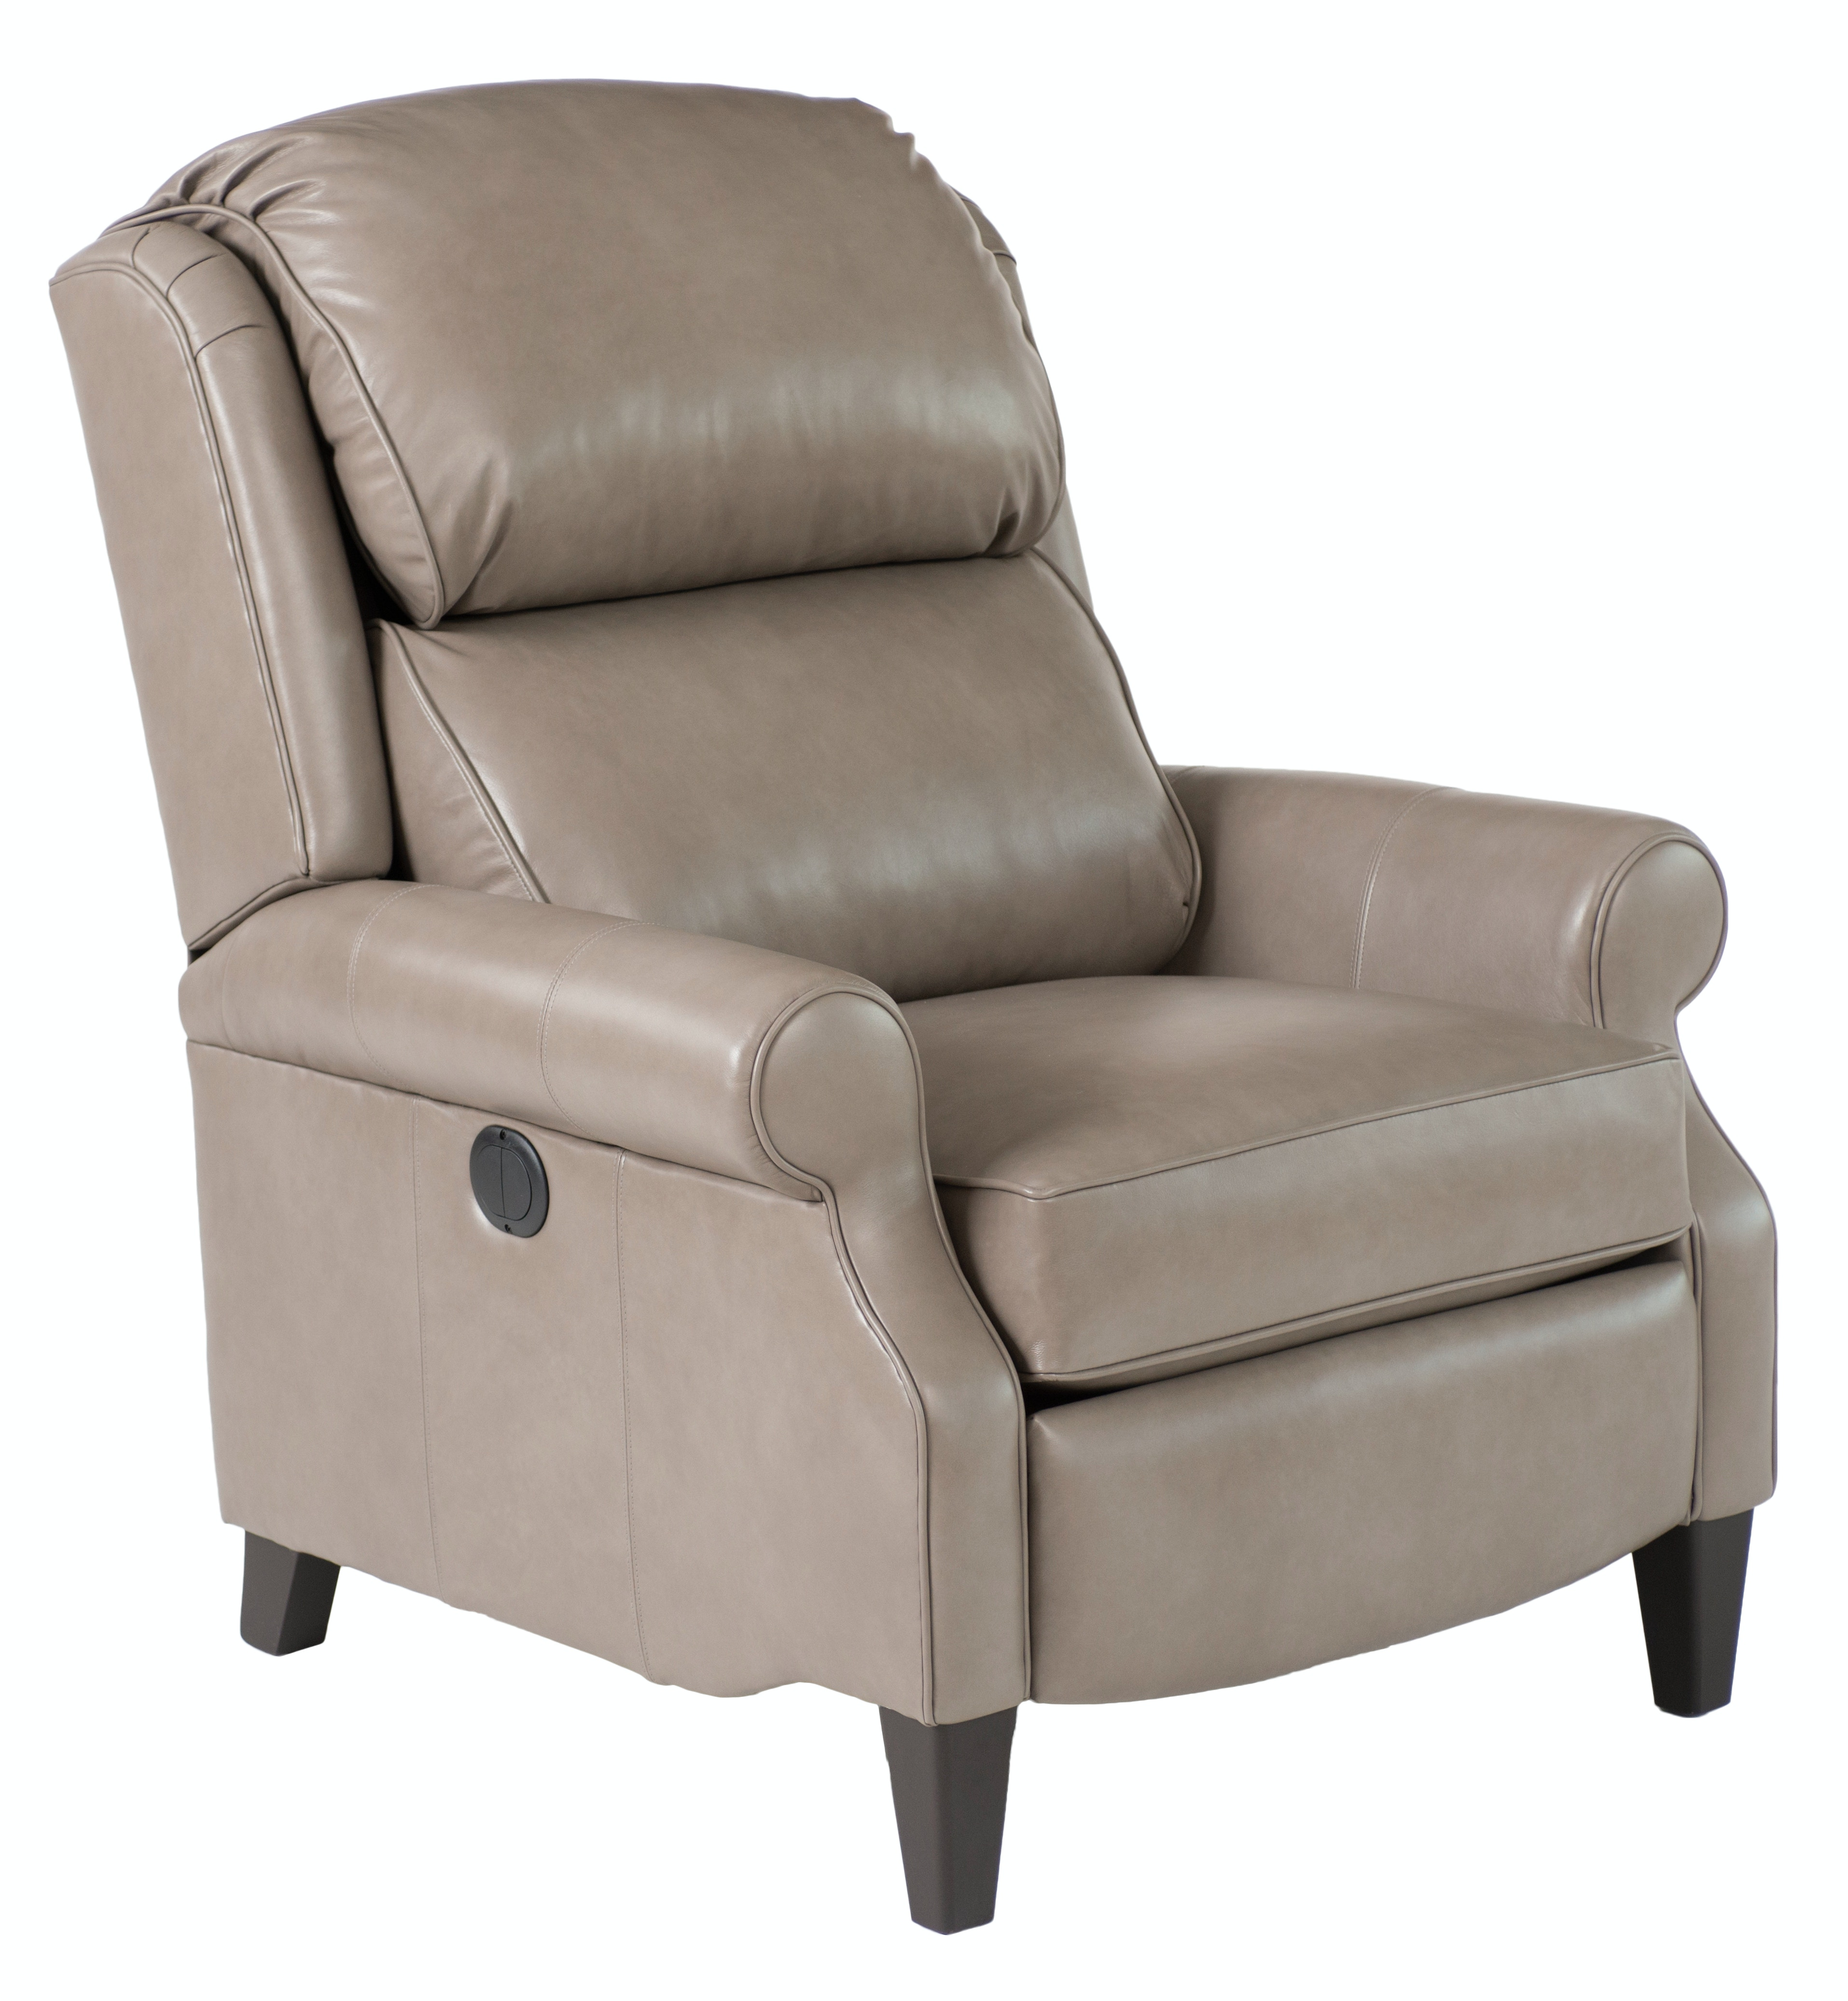 Superbe Smith Brothers Motorized Reclining Chair 503 38